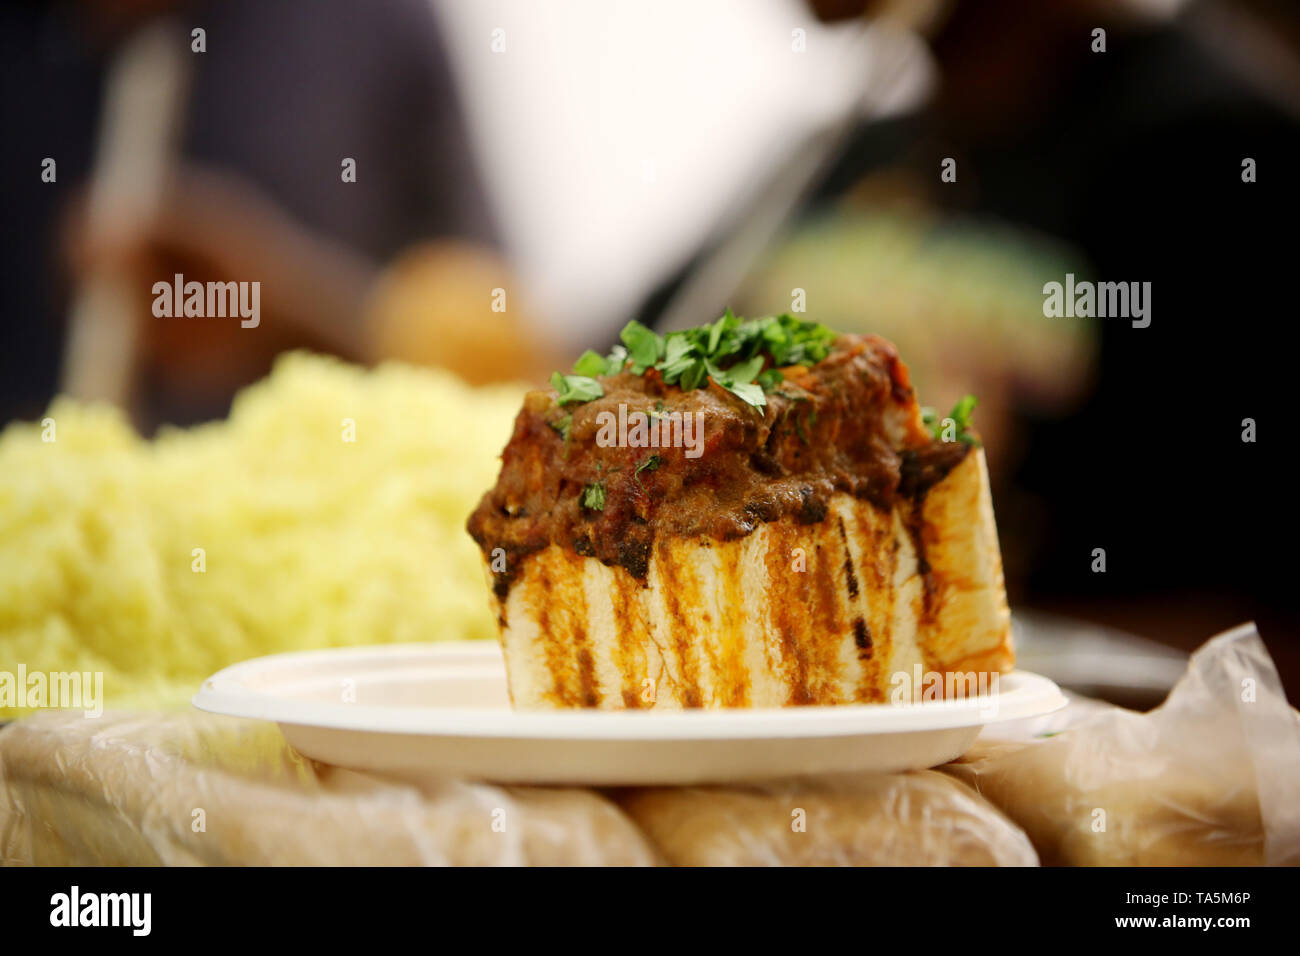 An indian inspired curry and bread fast food meal known as a bunny chow in South Africa - Stock Image